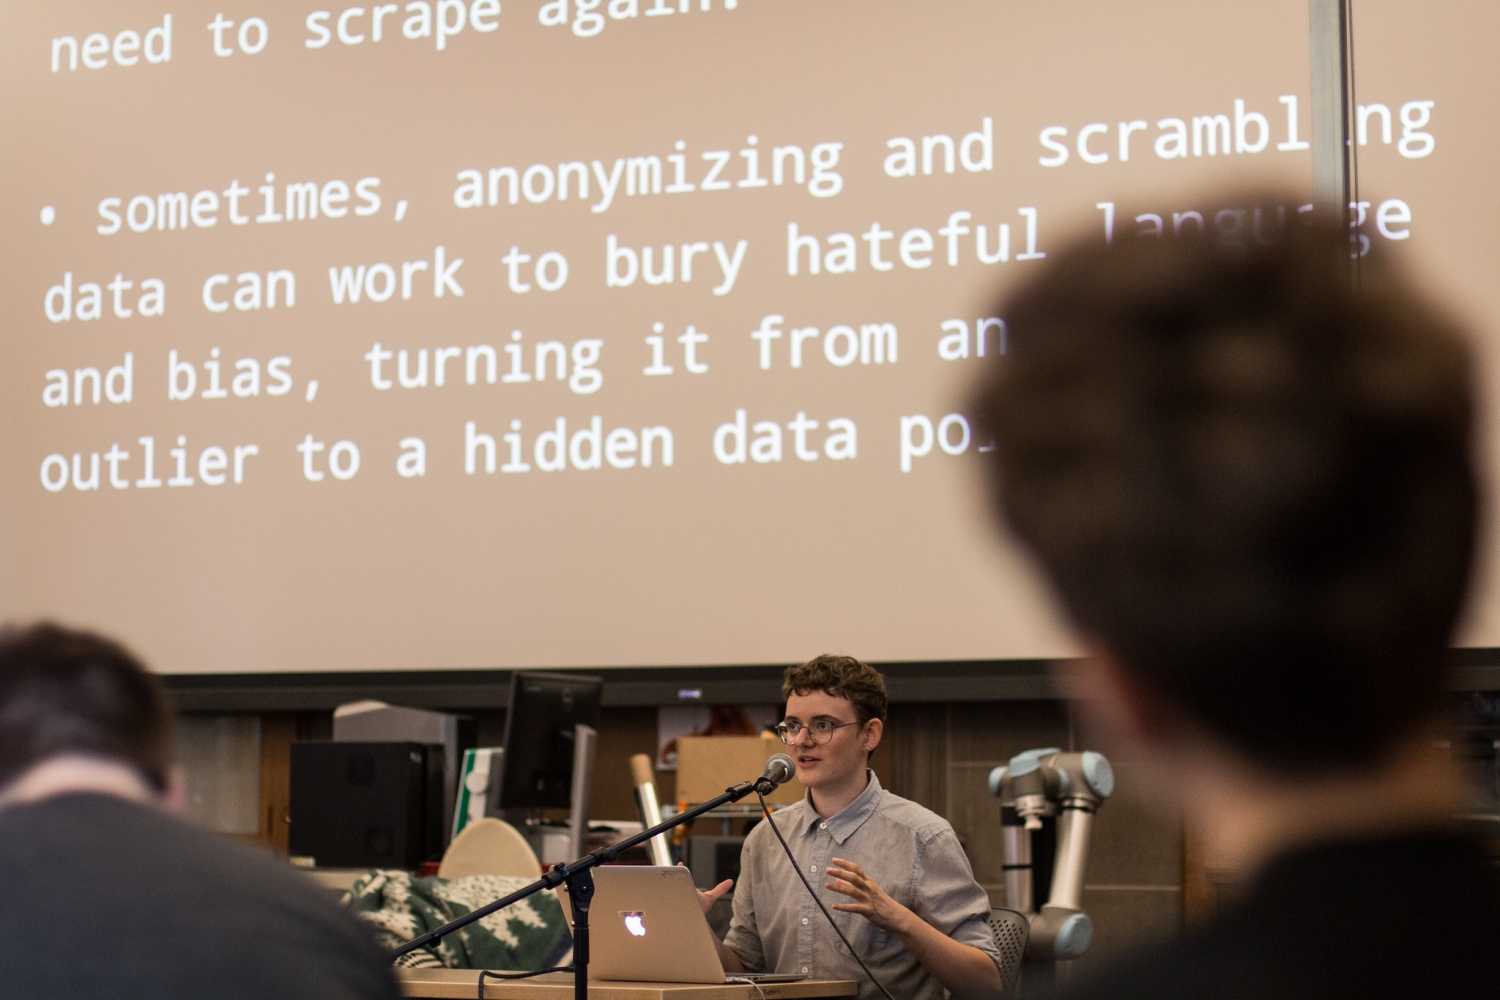 Participant speaks at a podium in front of projected text about the problem with anonymyzing data